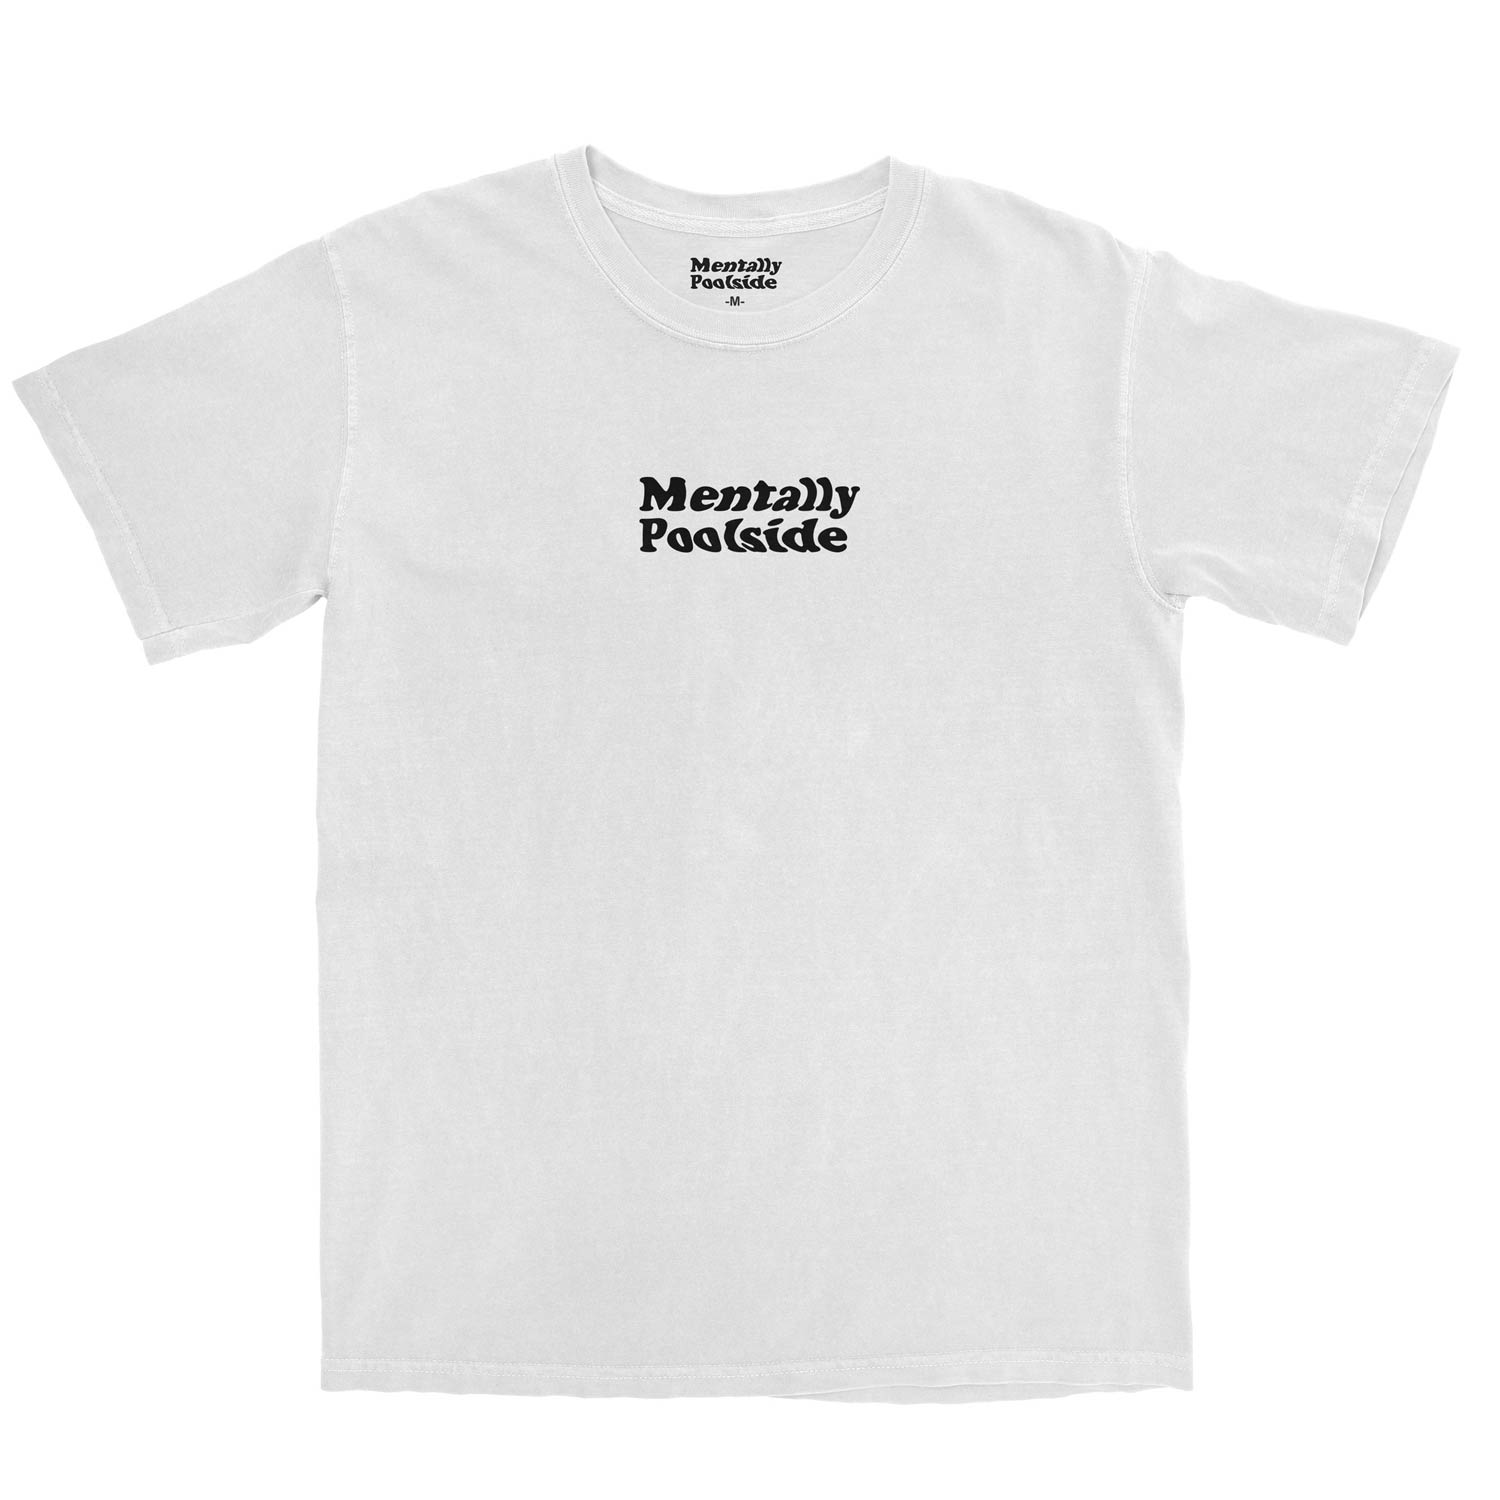 Mentally Poolside OG Tee-Tee shirt-Comfort colors-White-Black OG-S-Mentally Poolside